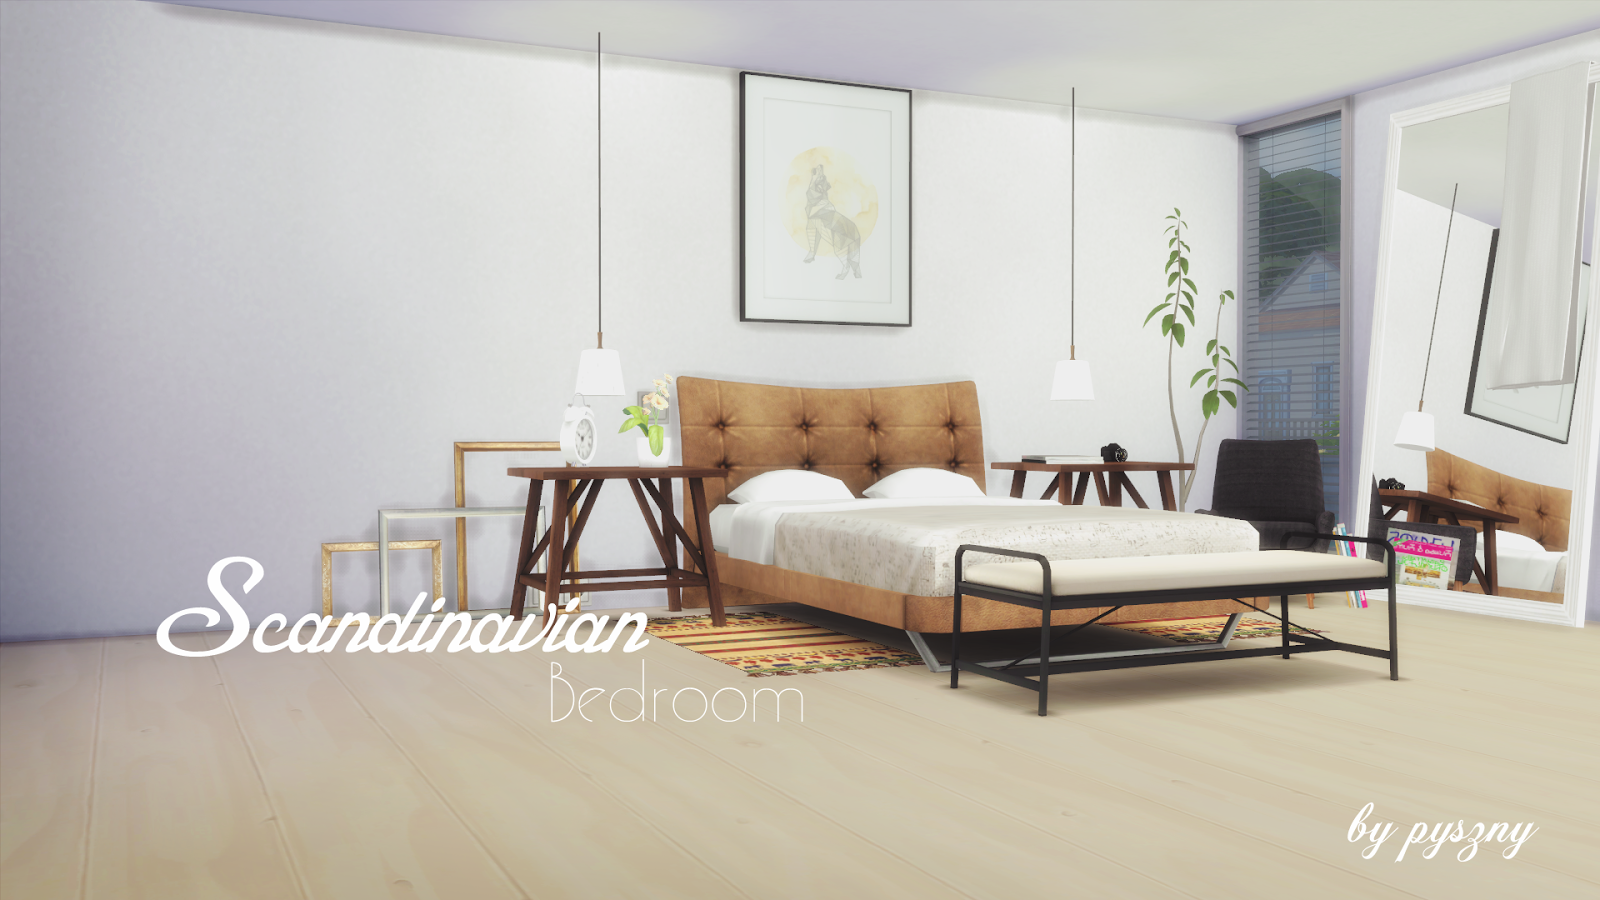 Http Pysznydesign Blogspot Com 2016 04 Scandinavian Bedroom New Set Html